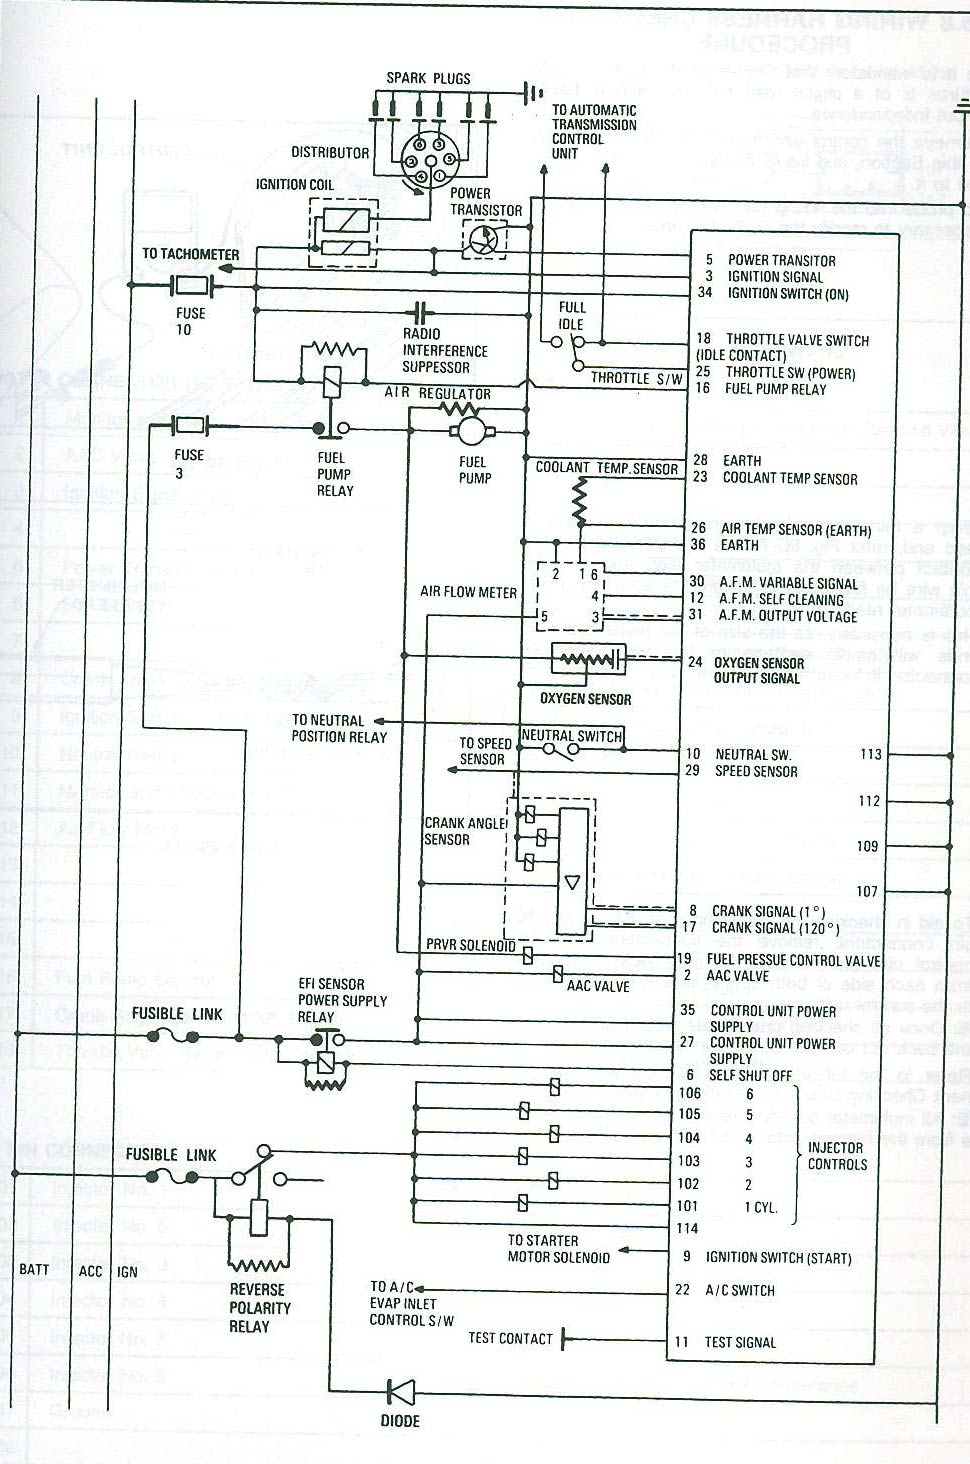 ecuwiring rb30 wiring diagrams 280zx project 1983 datsun 280zx turbo wiring diagrams at bayanpartner.co